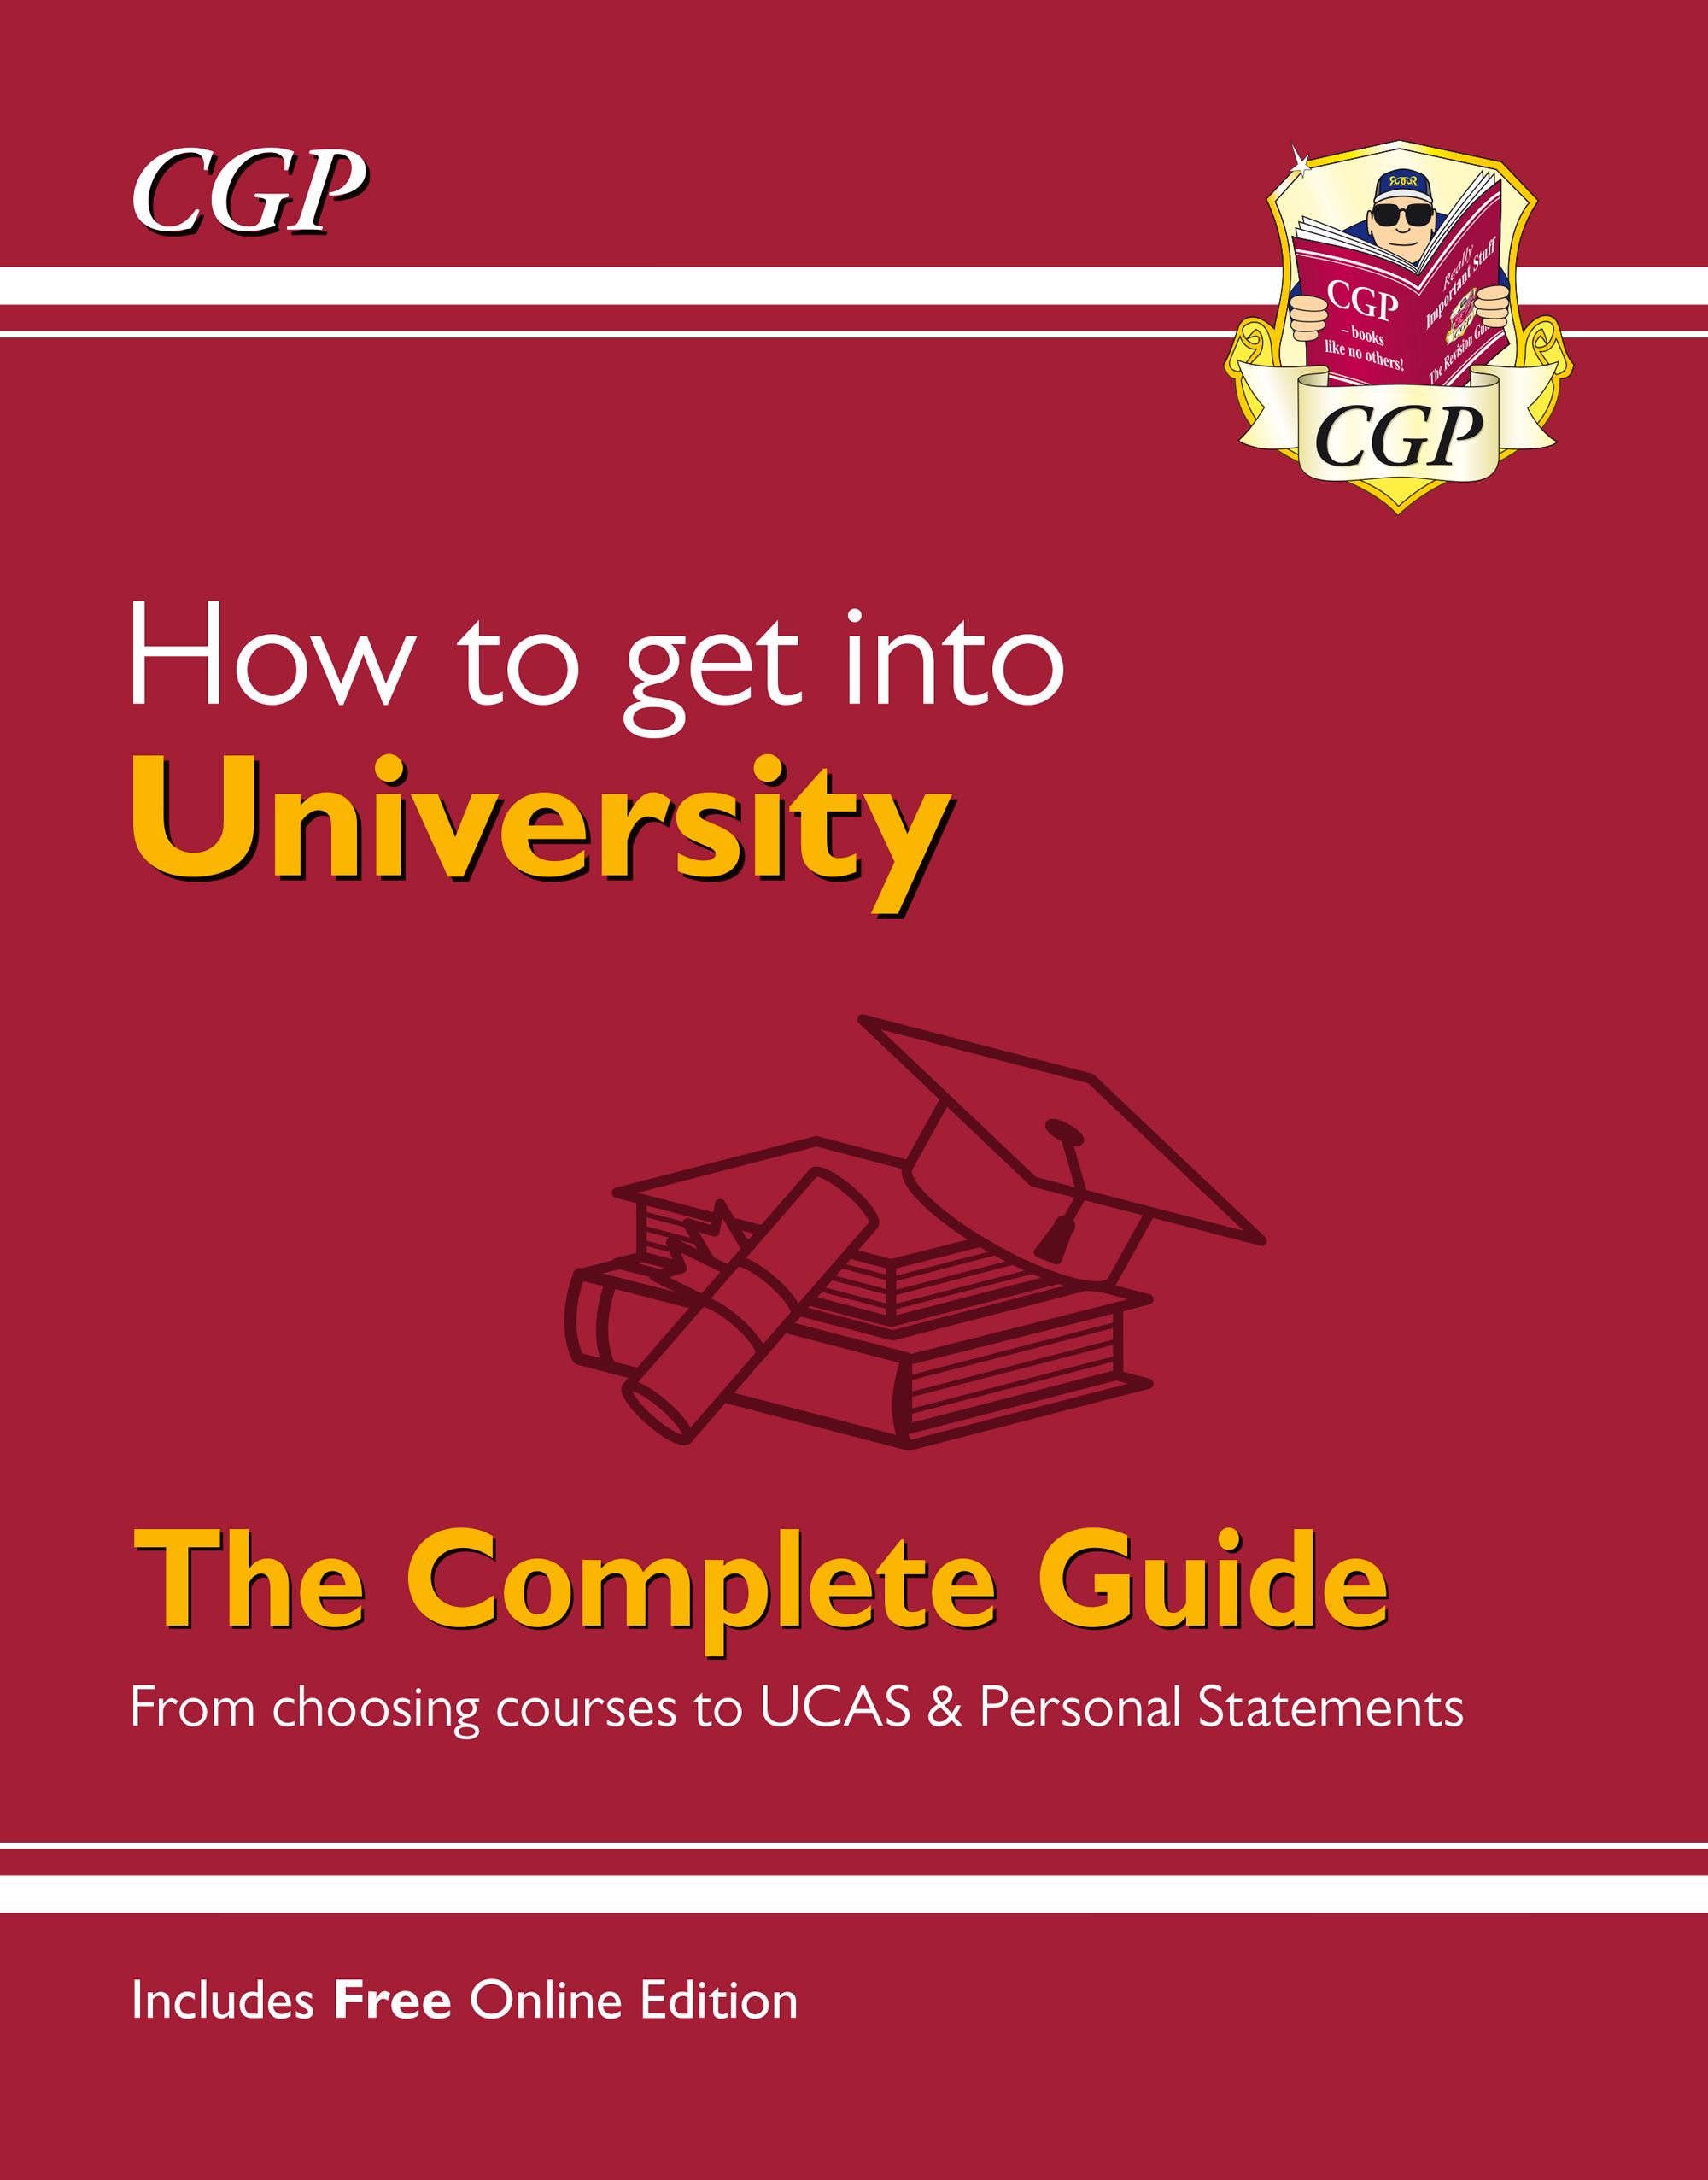 XHUR71 - How to get into University: From choosing courses to UCAS and Personal Statements